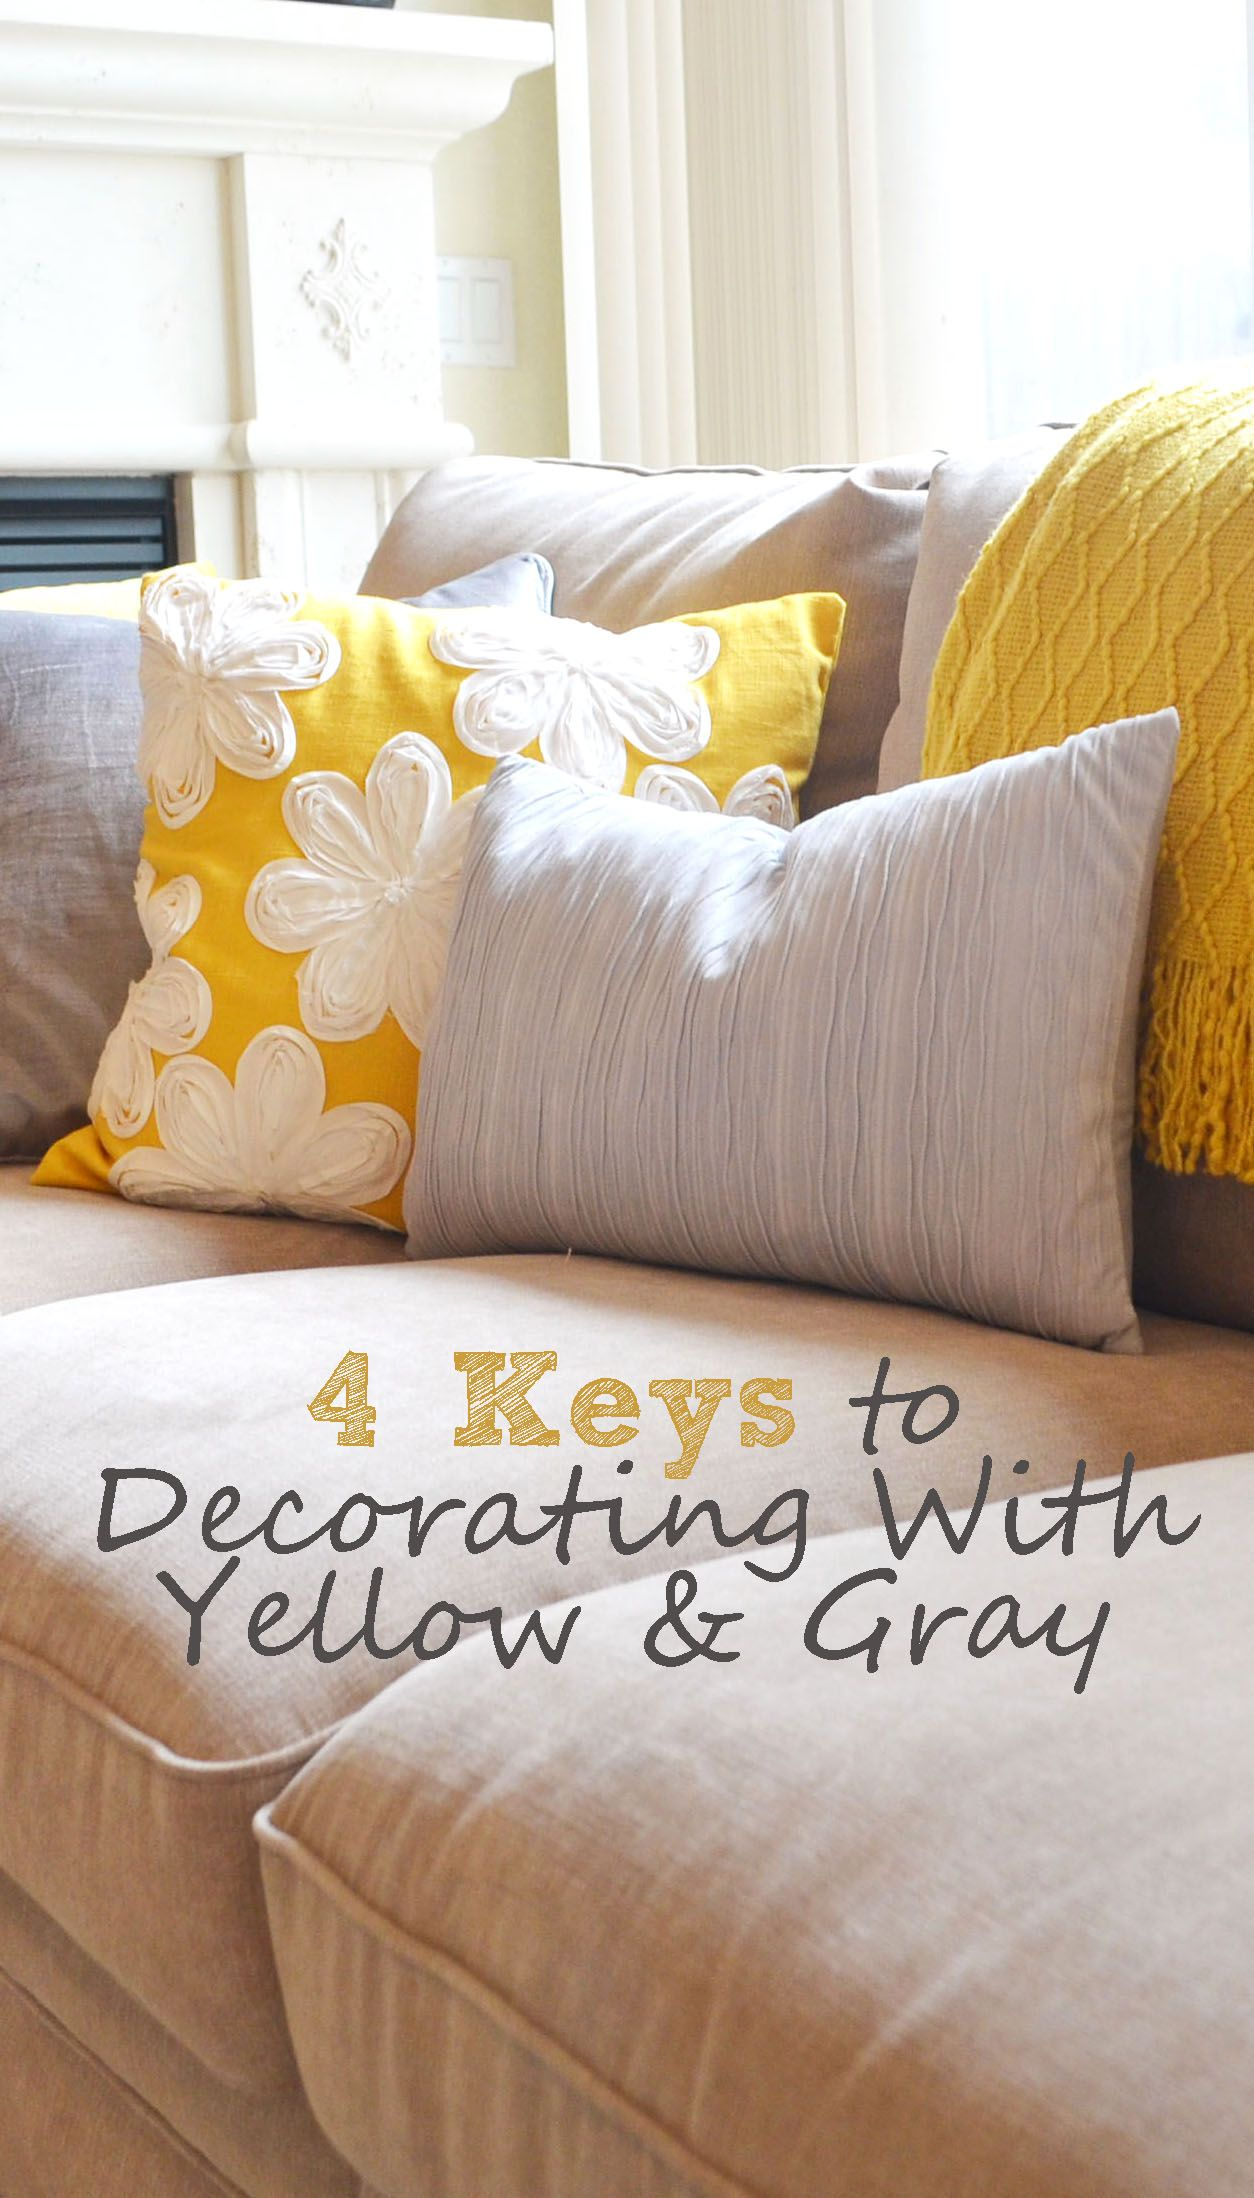 Decorating With Yellow & Gray